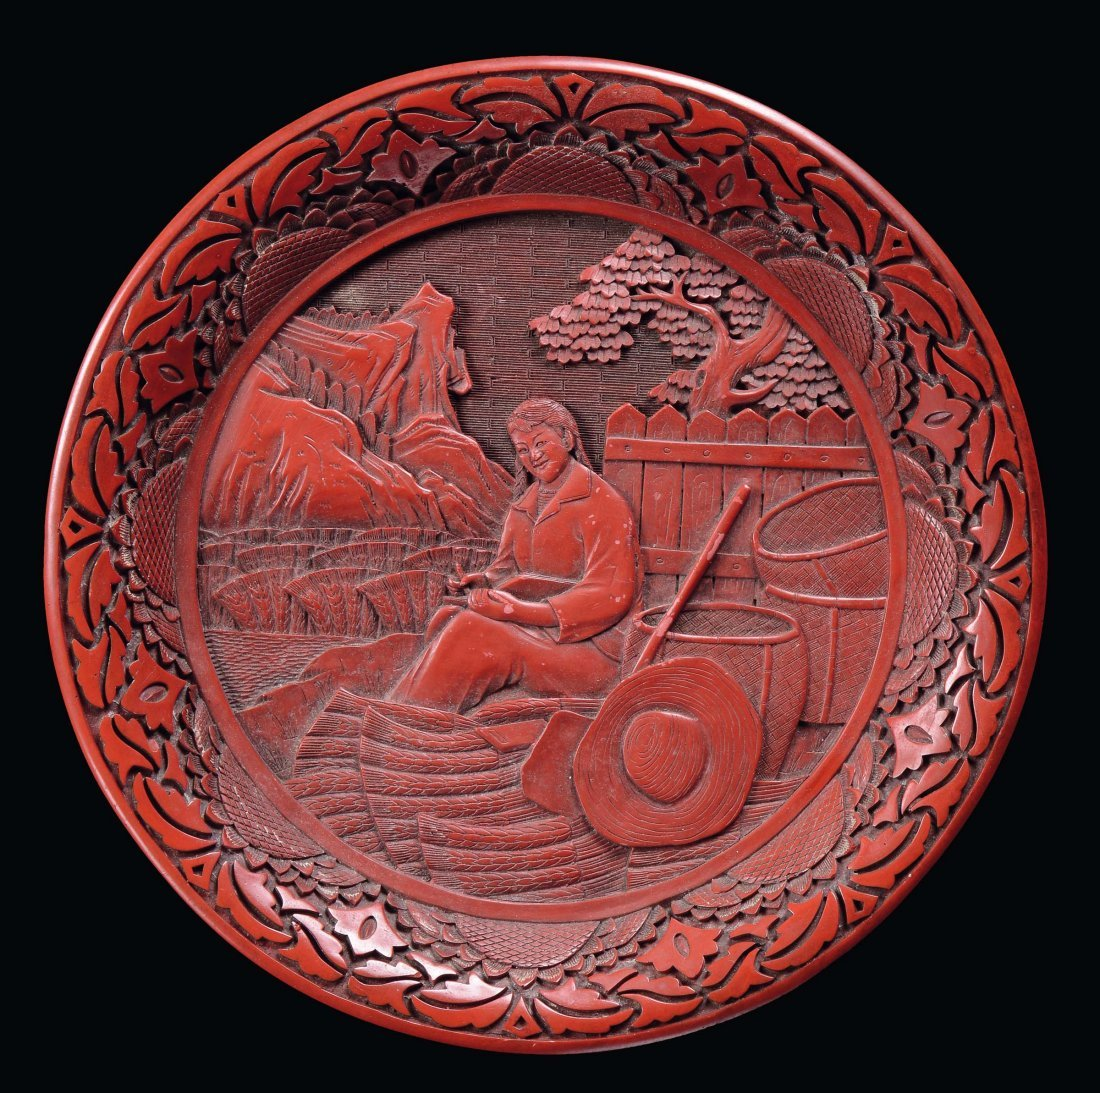 A red lacquer plate with countrywoman, China, Republic,